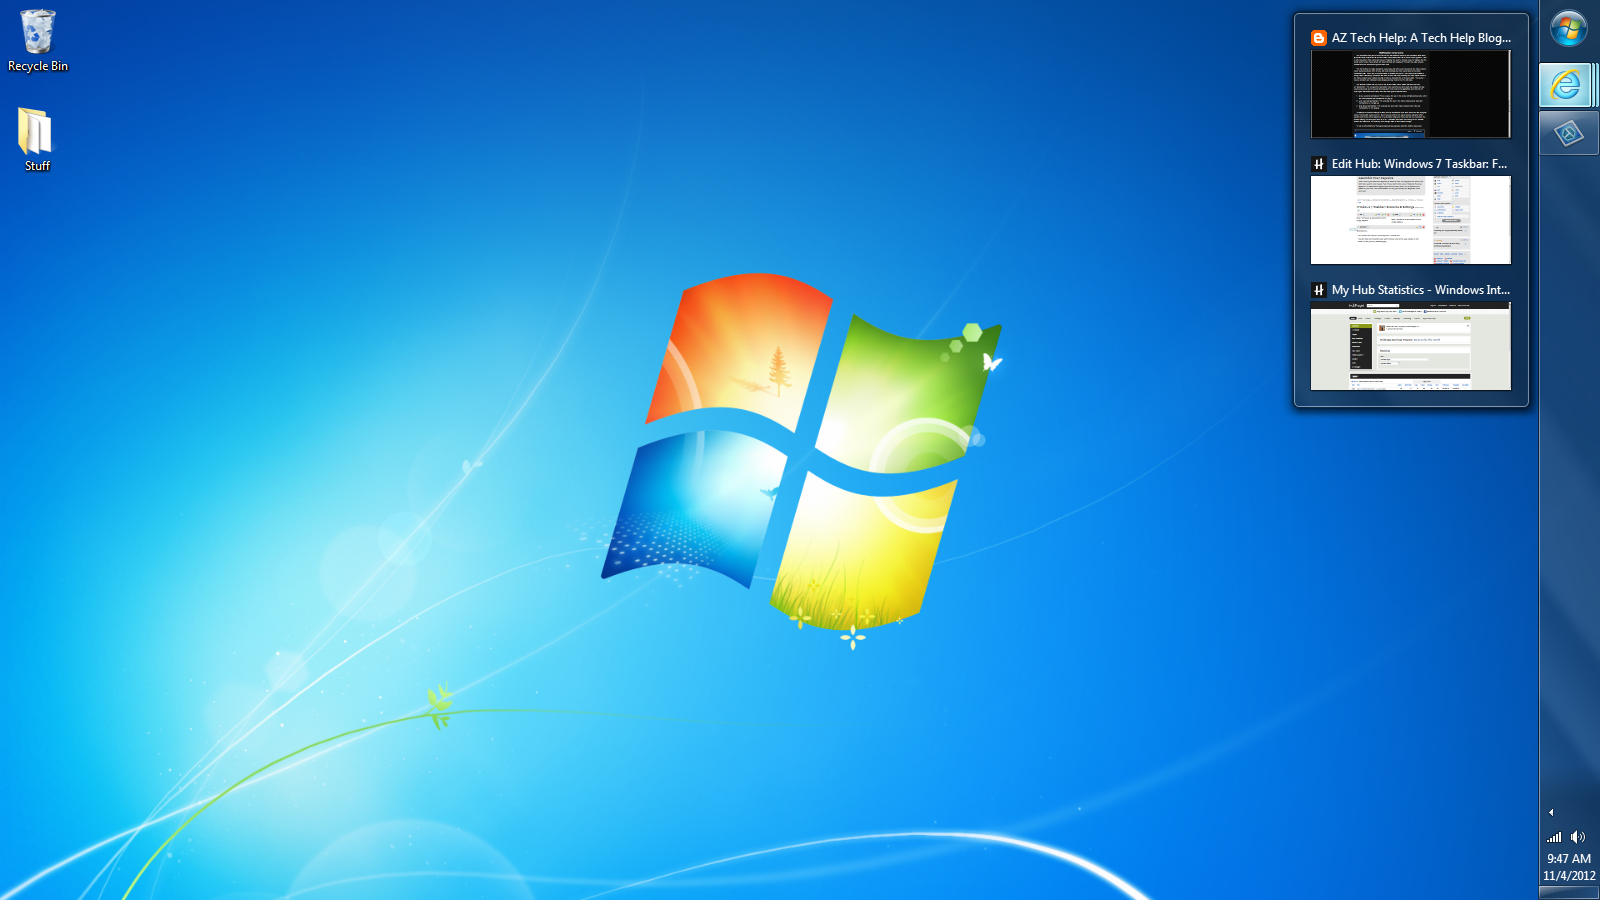 Windows 7 Taskbar Features Settings Windows Wallpaper Windows Microsoft